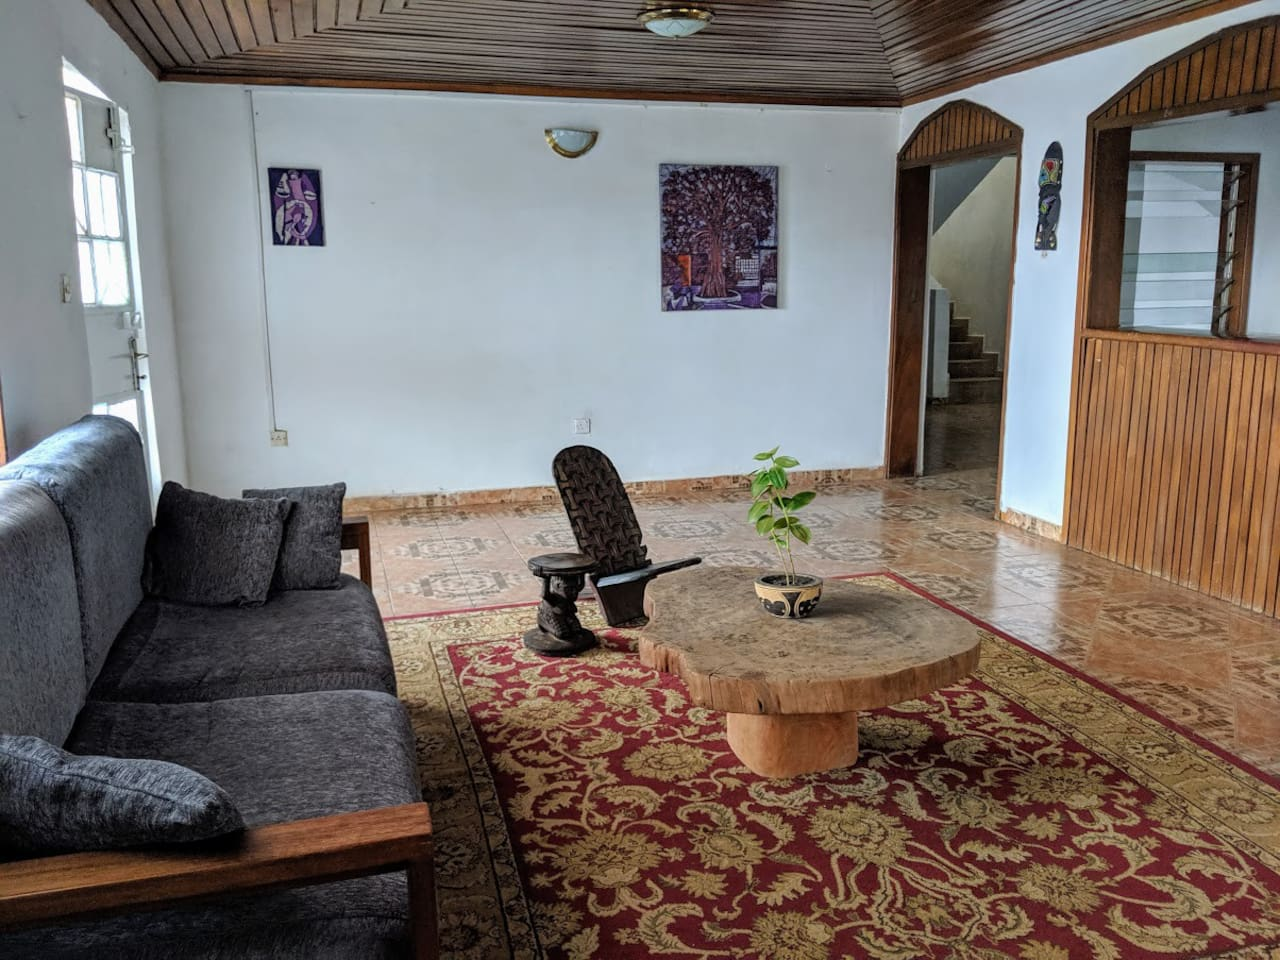 Our guesthouse will make you feel at home in Freetown. All furniture is handmade locally by artisans, nothing is imported!